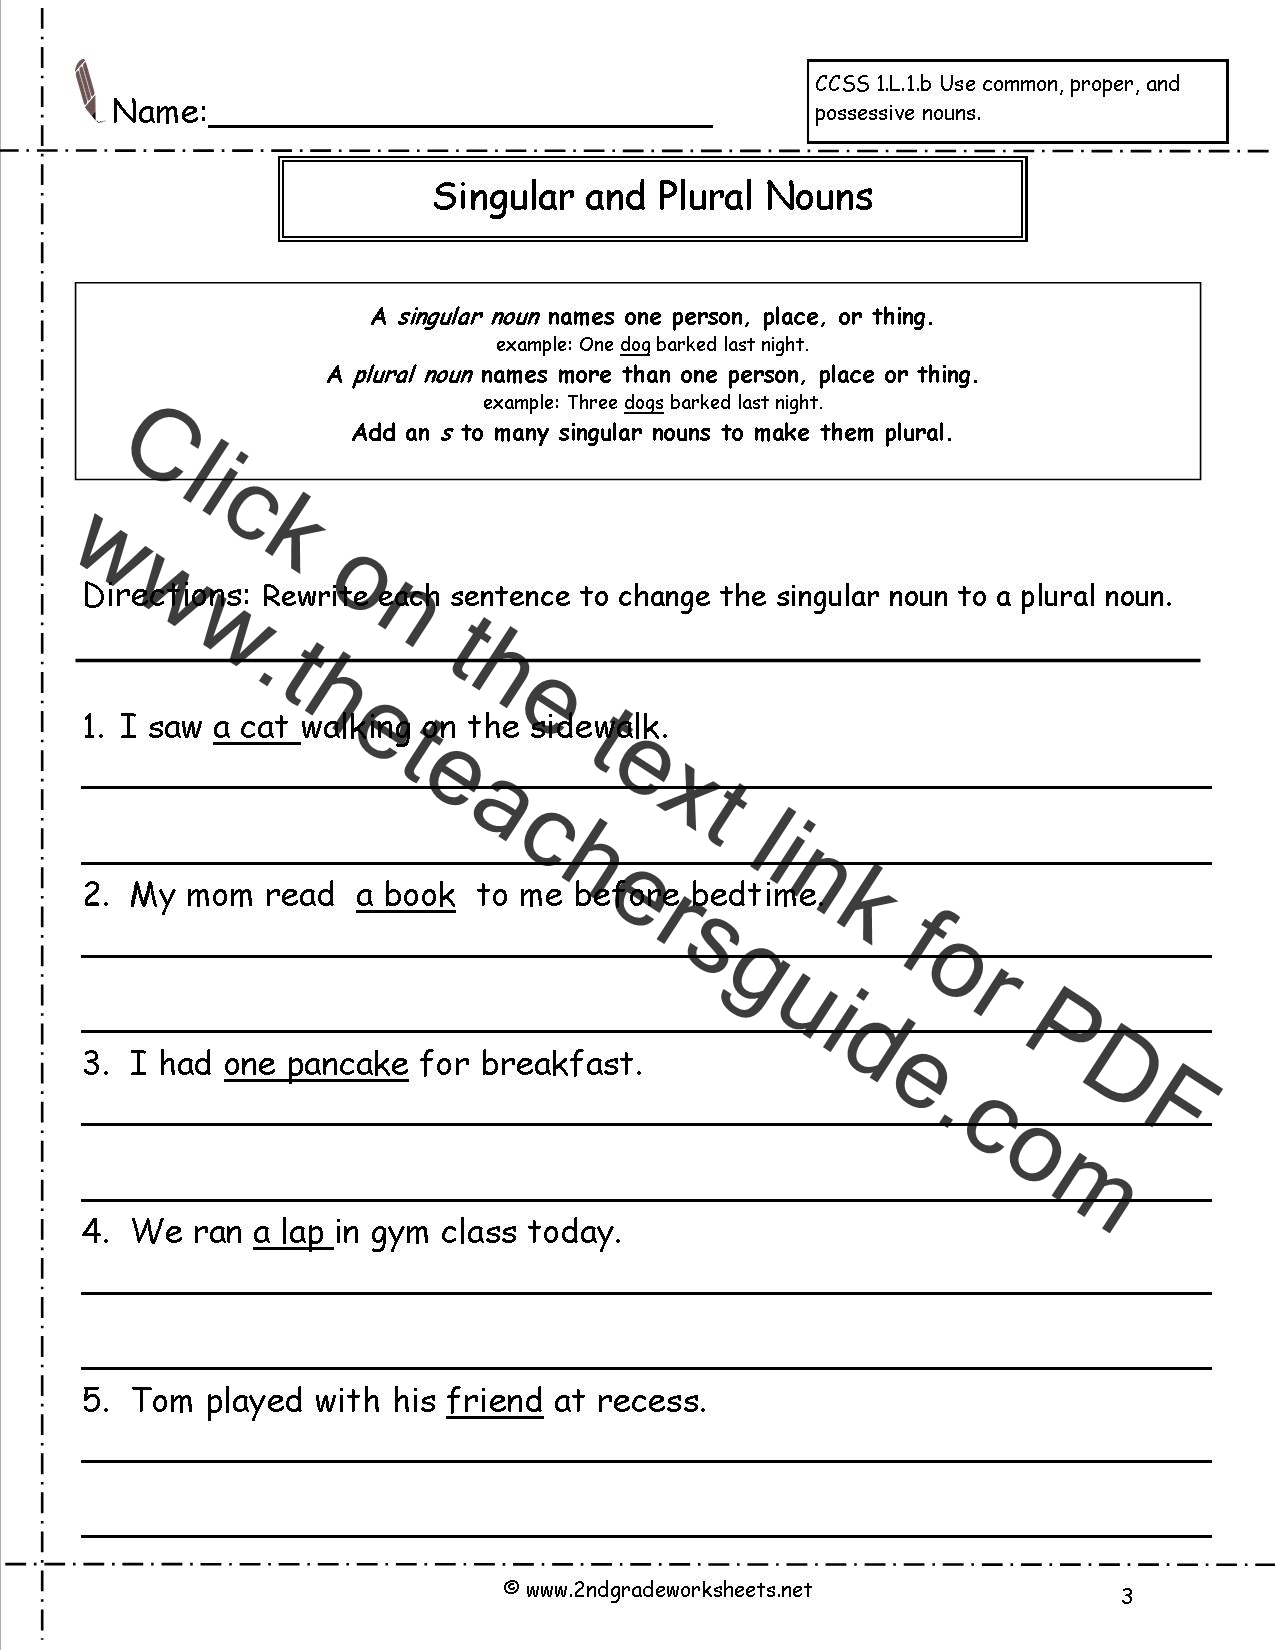 Worksheet Singular And Plural Nouns Worksheet singular and plural nouns worksheets worksheet